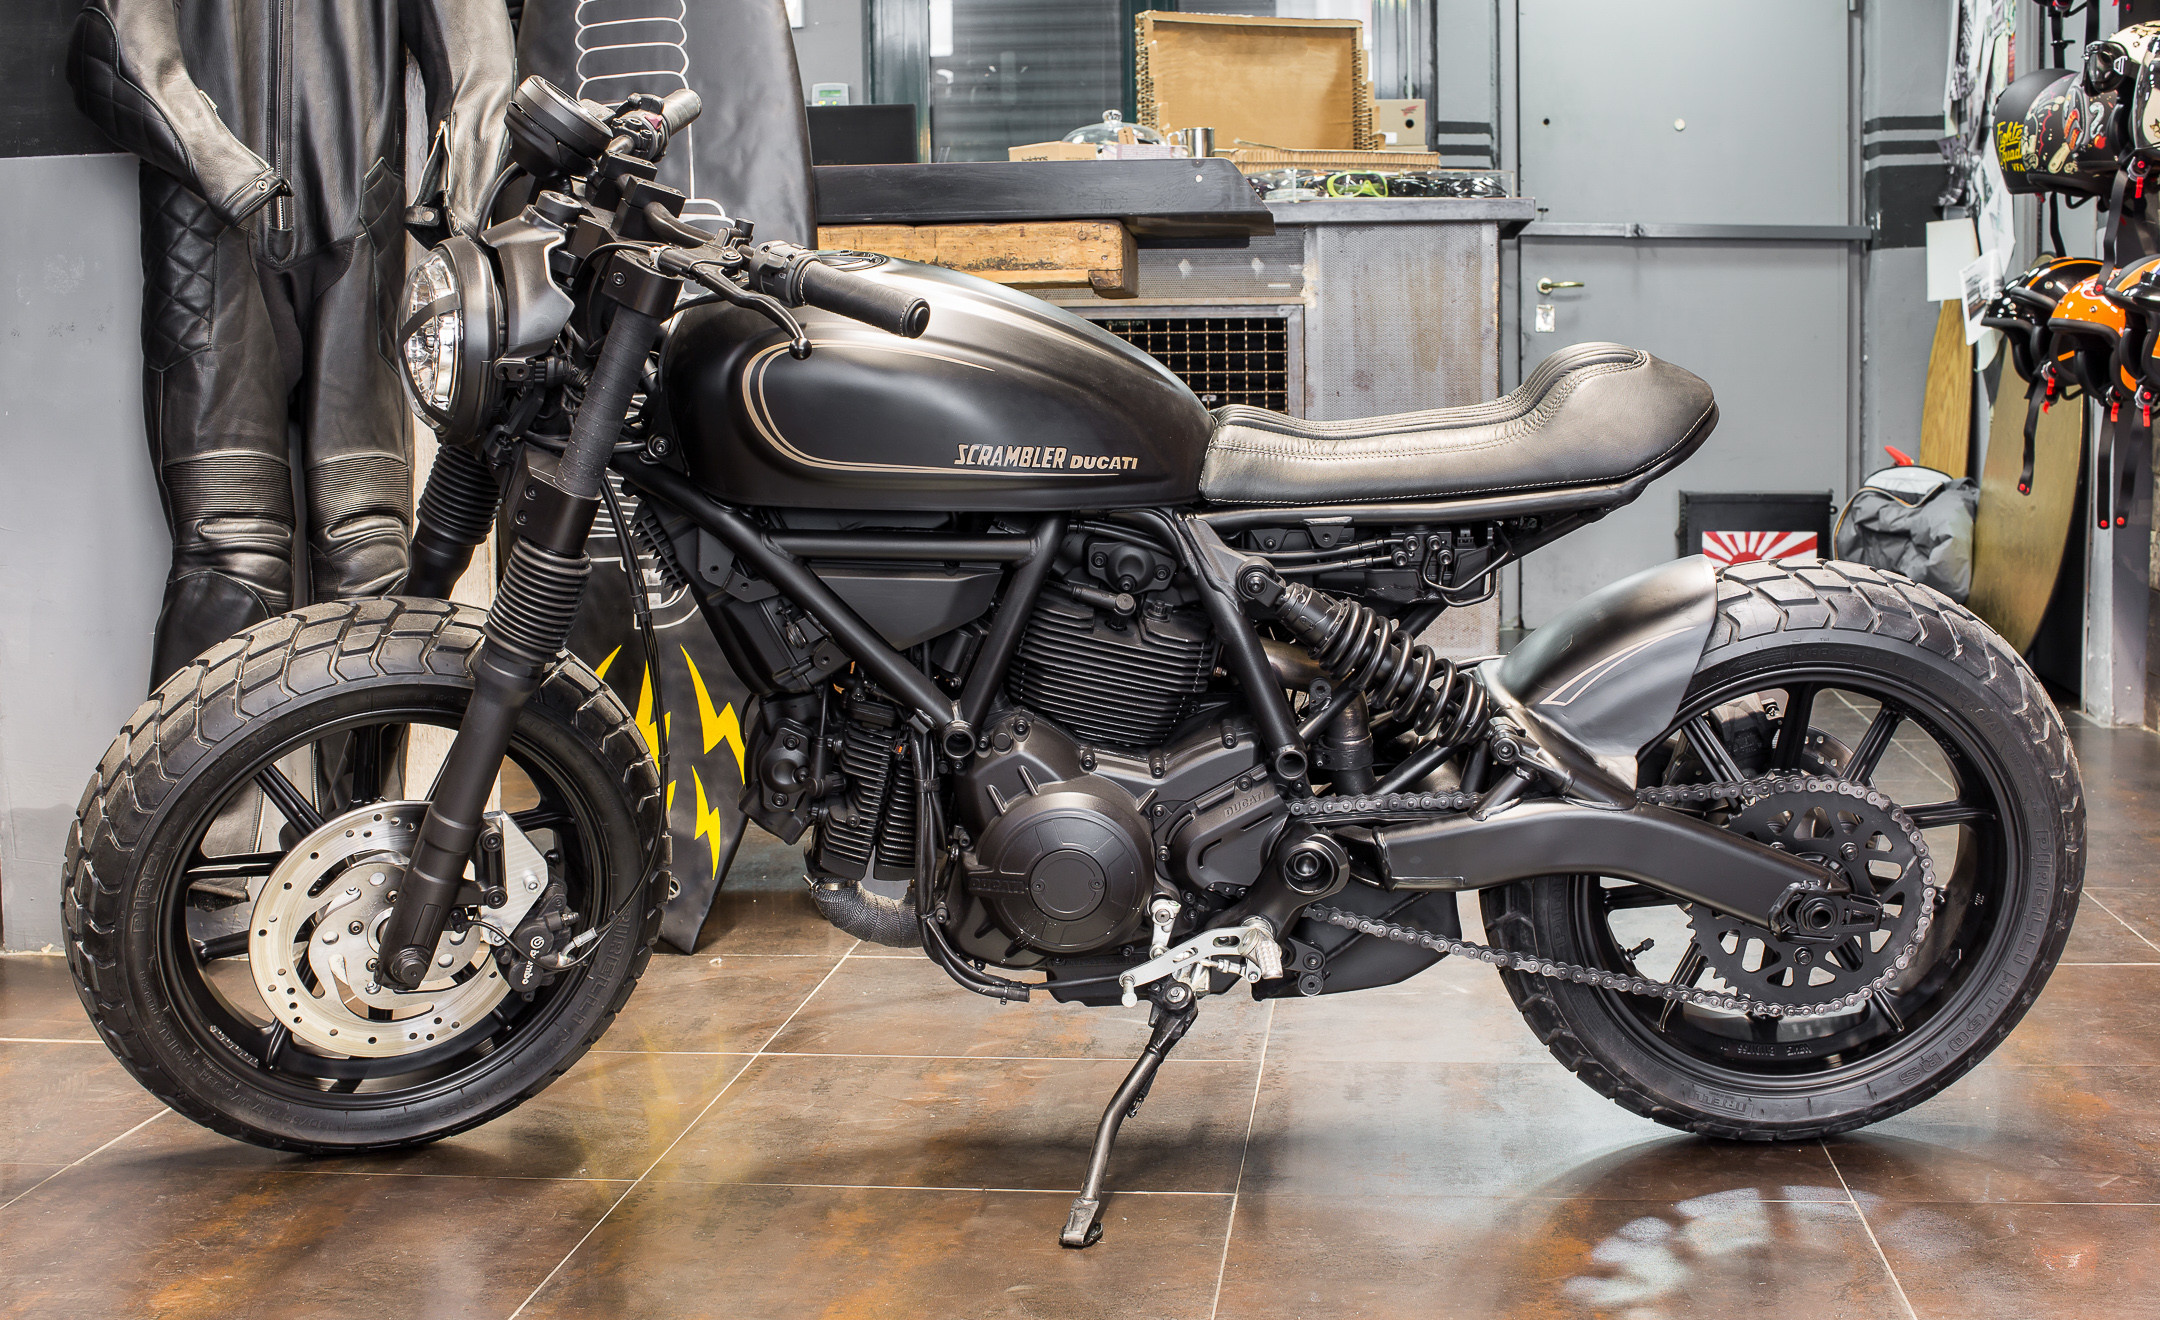 2160x1320 Three Motorbikes of Verona: Ducati Displays Tweaked Scramblers